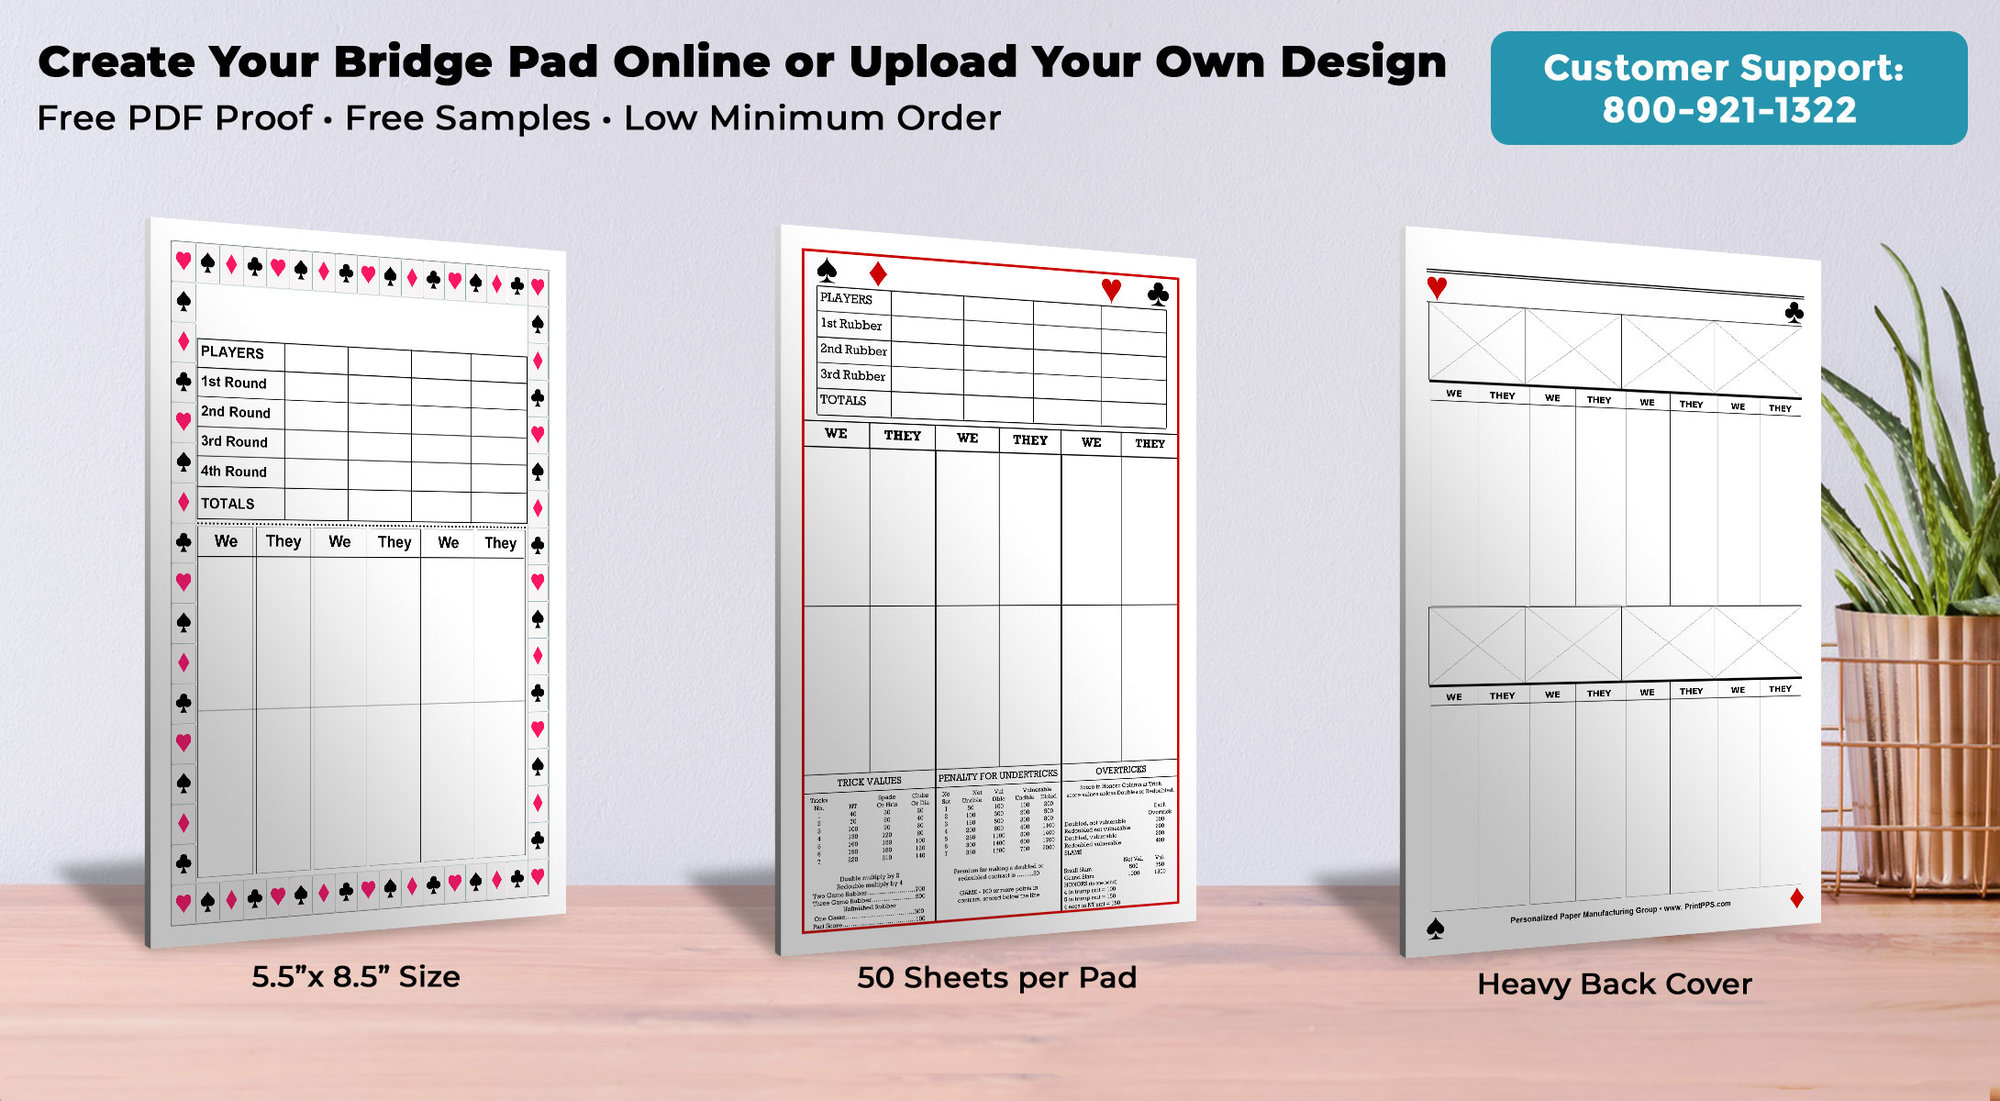 https://printpps.com/images/products_gallery_images/NON-Bridge-Notepads_Product-Page-Banner_2.jpg